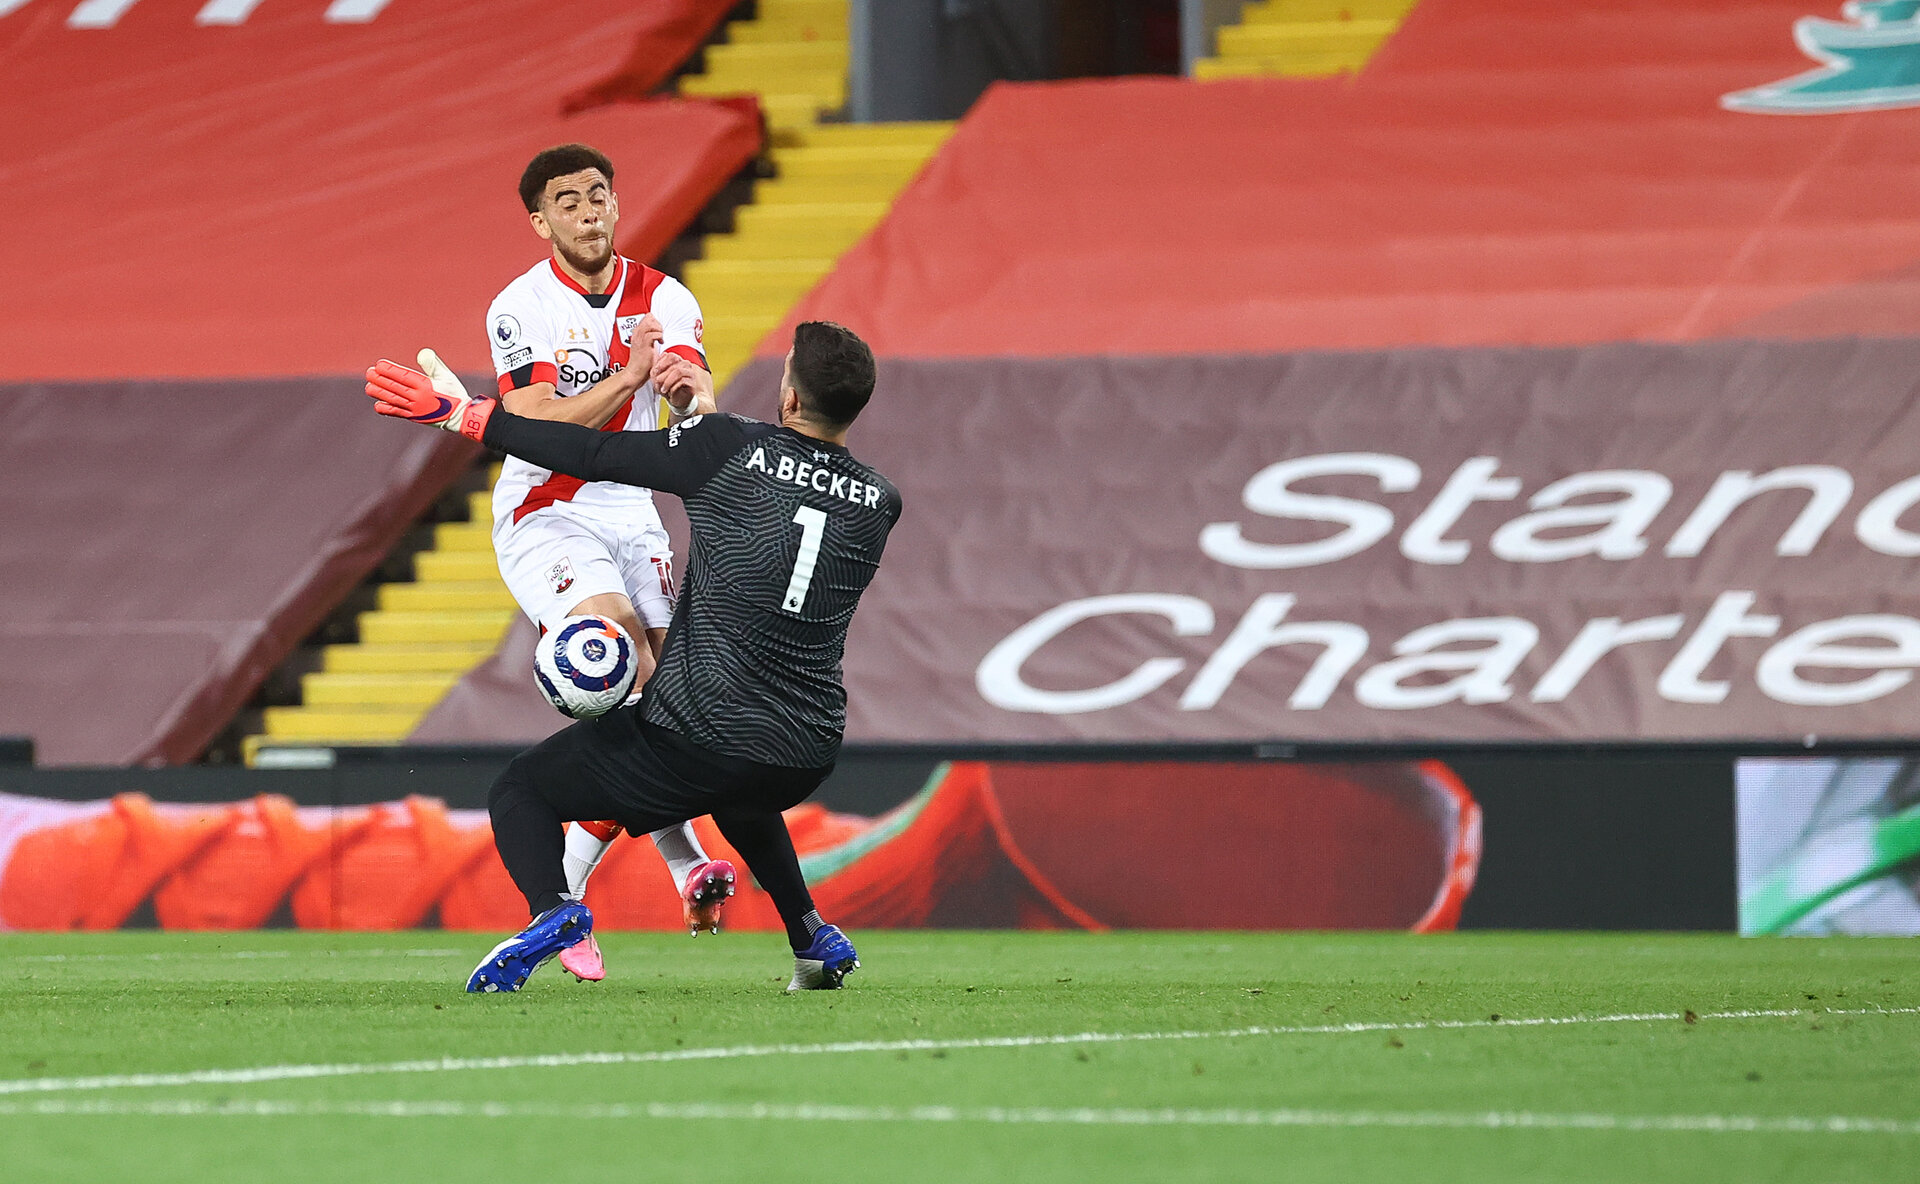 LIVERPOOL, ENGLAND - MAY 08: Che Adams(L) of Southampton is denied by Liverpool goalkeeper Alisson Becker during the Premier League match between Liverpool and Southampton at Anfield on May 08, 2021 in Liverpool, England. Sporting stadiums around the UK remain under strict restrictions due to the Coronavirus Pandemic as Government social distancing laws prohibit fans inside venues resulting in games being played behind closed doors. (Photo by Matt Watson/Southampton FC via Getty Images)